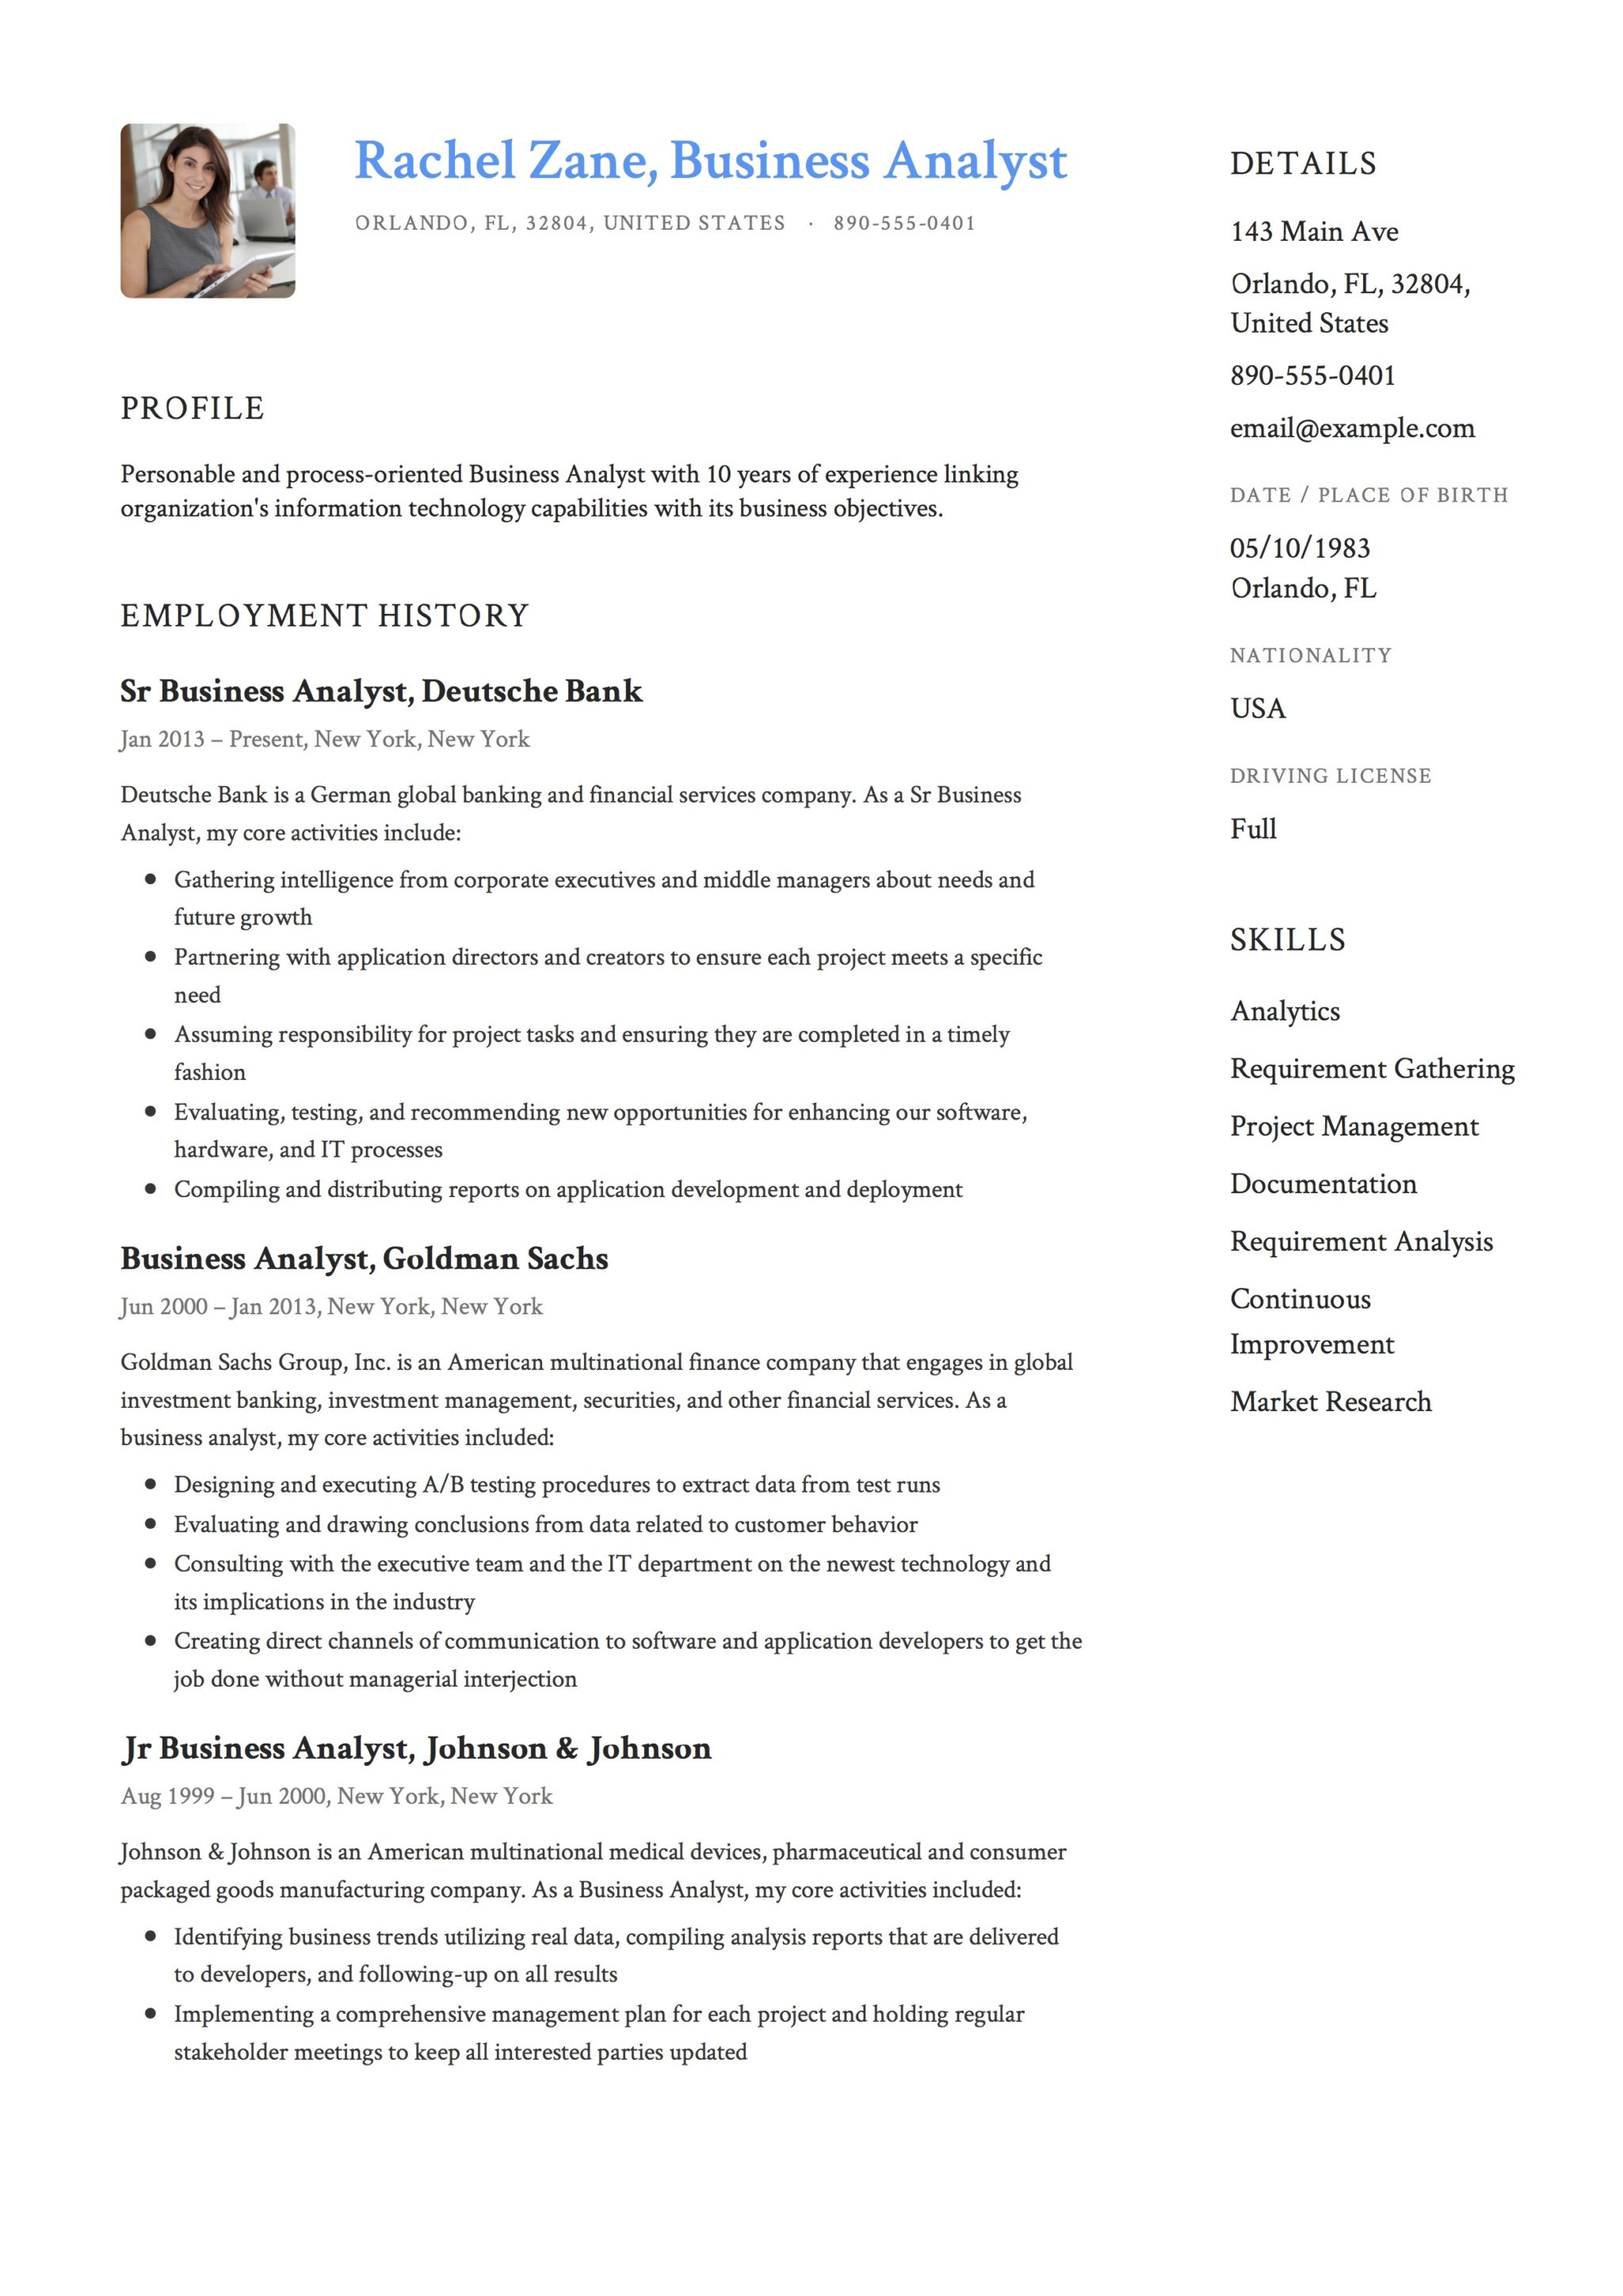 12 business analyst resume samples 2018 free downloads business analyst resume template accmission Image collections